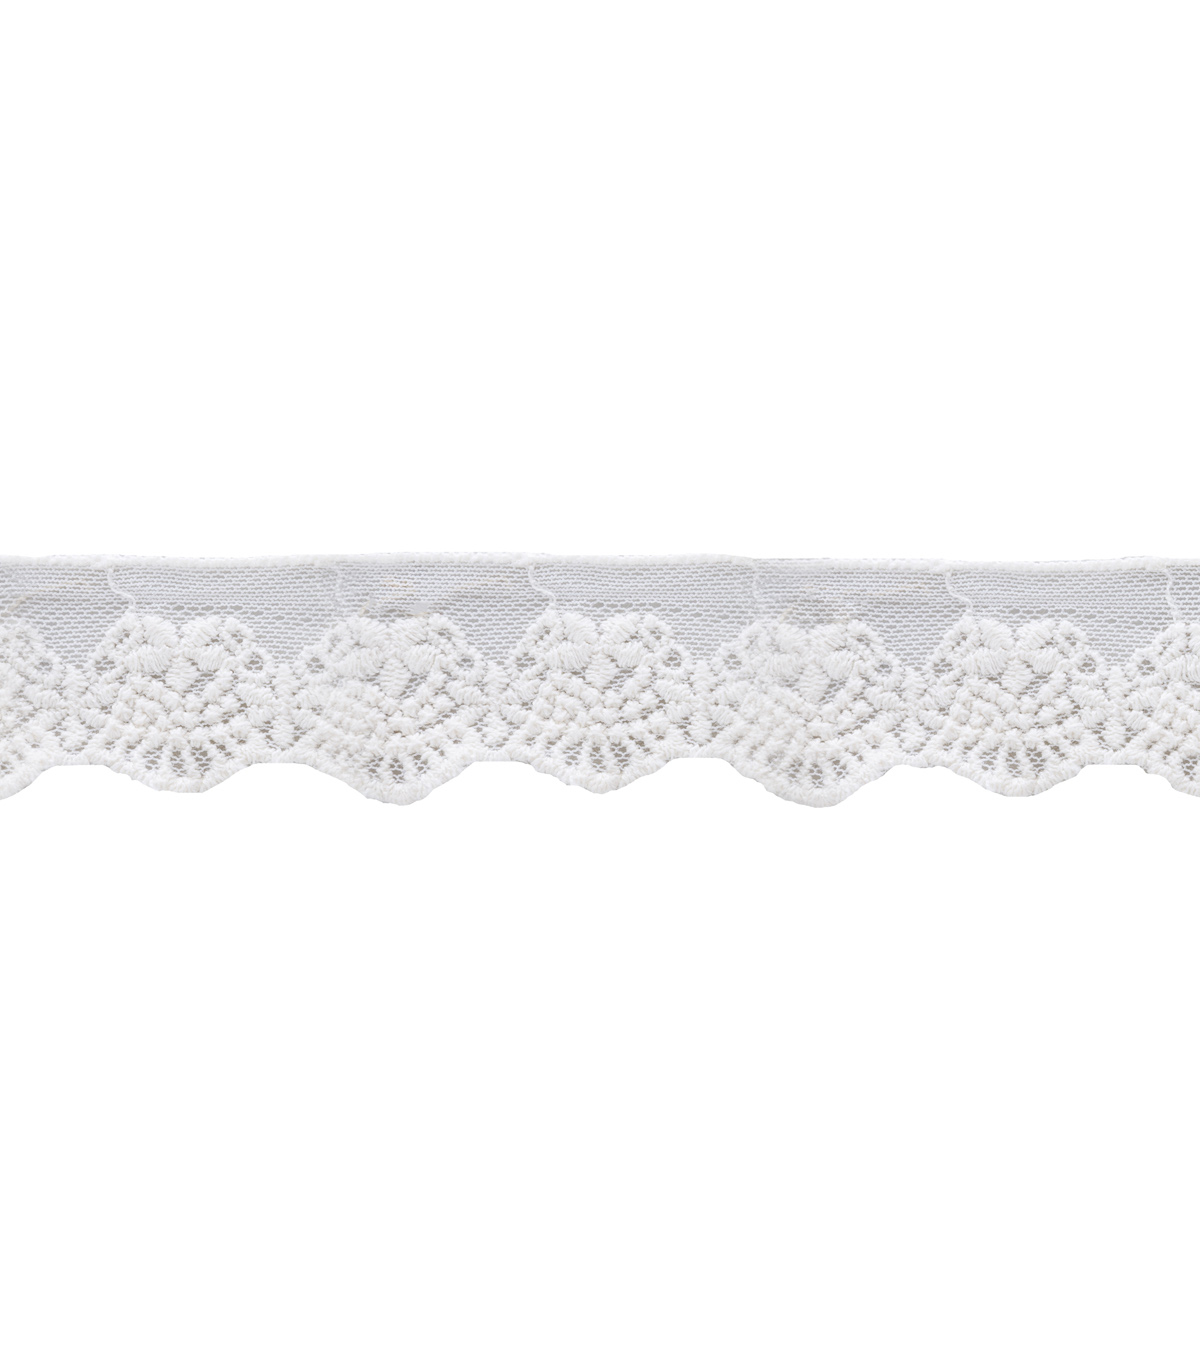 Wrights Trims-Embr Mesh Ivory